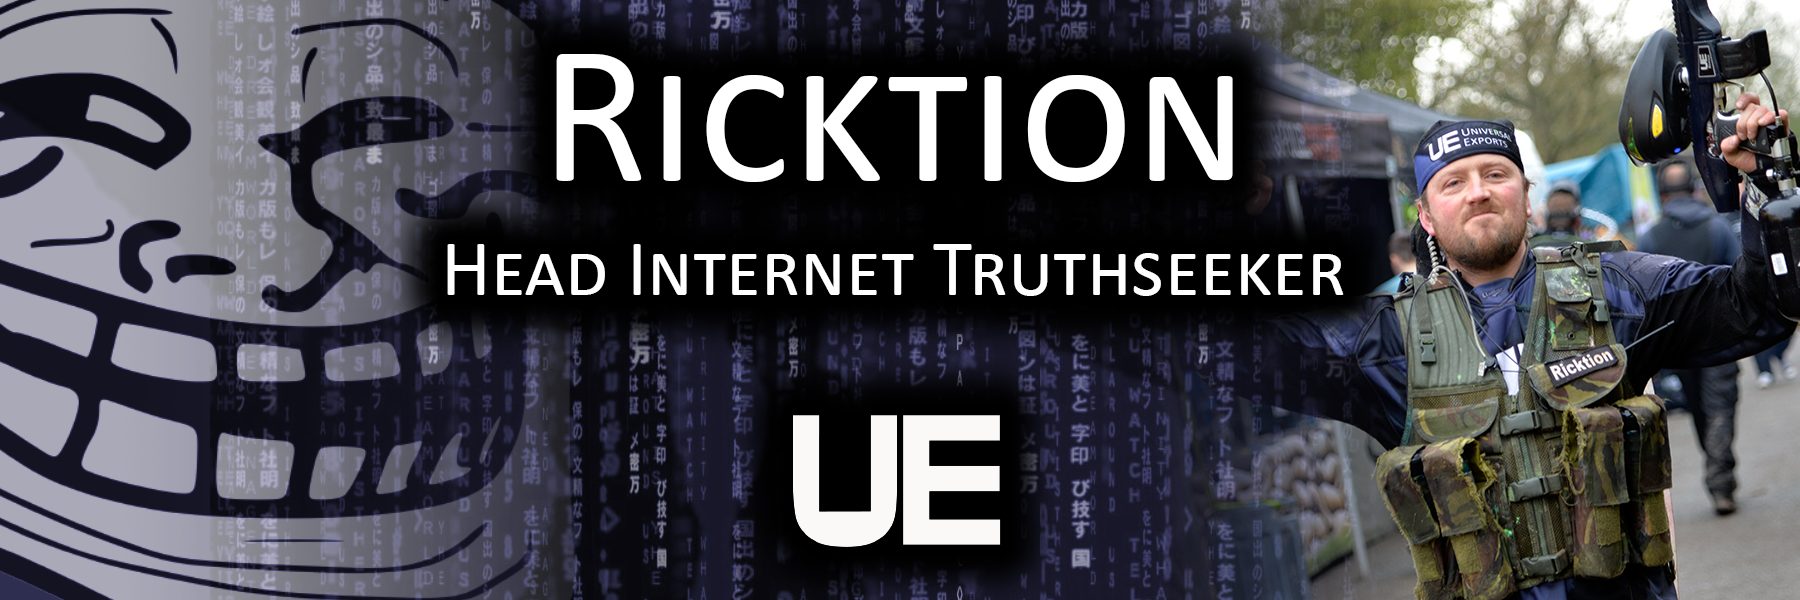 Ricktion - Head Internet Truthseeker